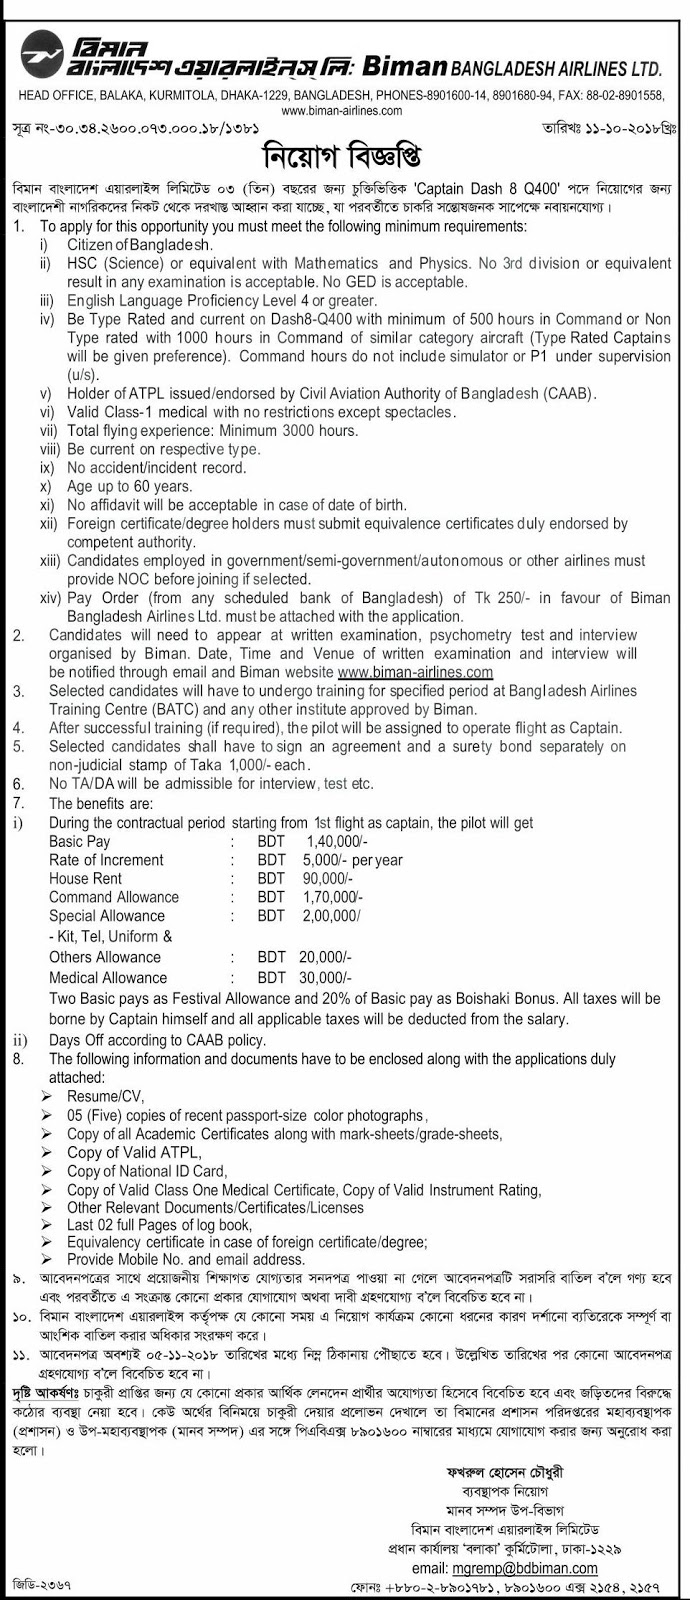 Biman Bangladesh Airlines Captain Dash 8 Q400 Recruitment Circular 2018